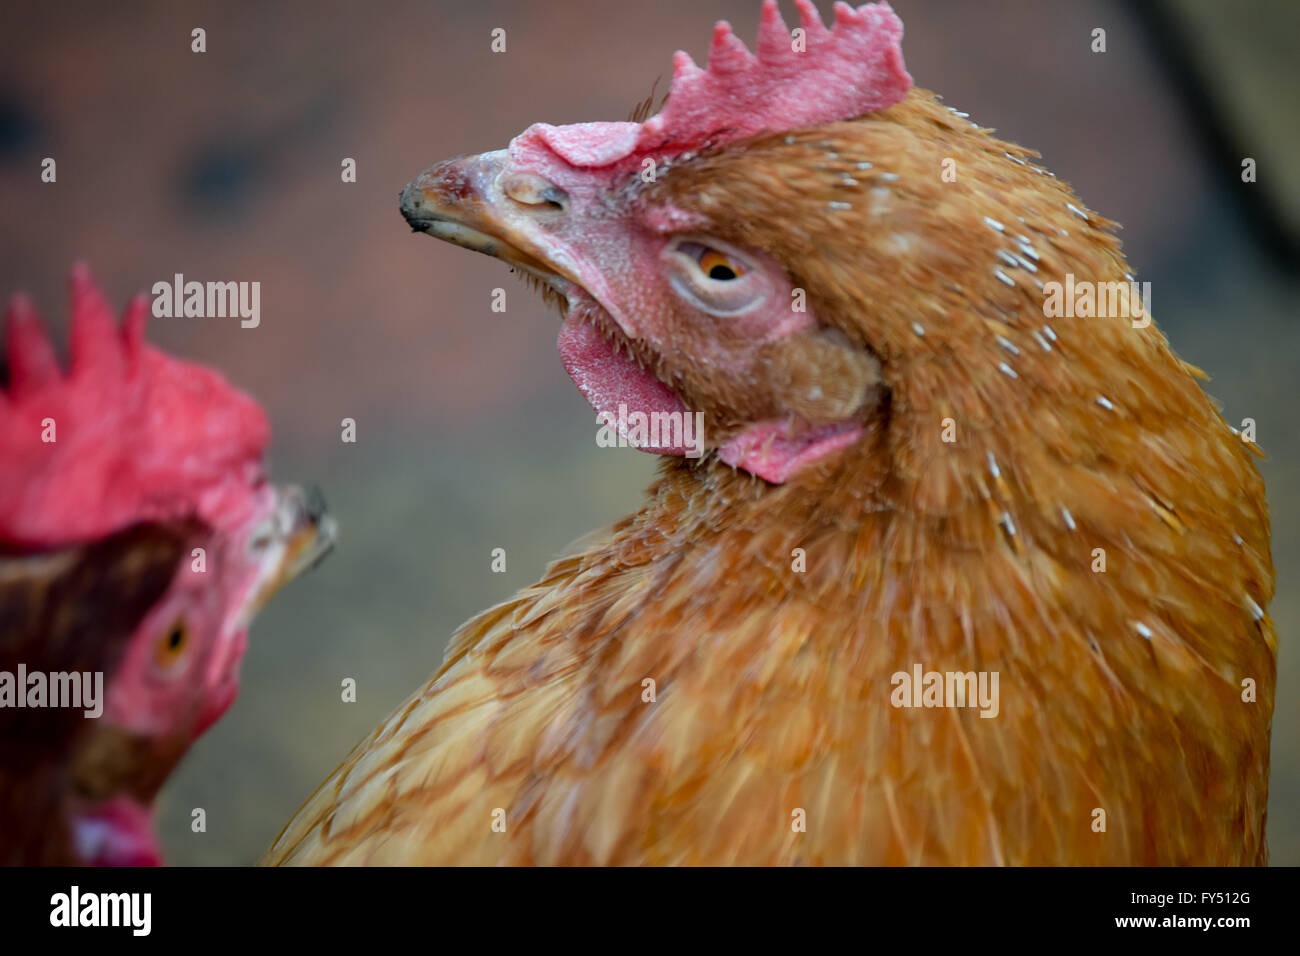 chicken turning around to look at another chicken - Stock Image